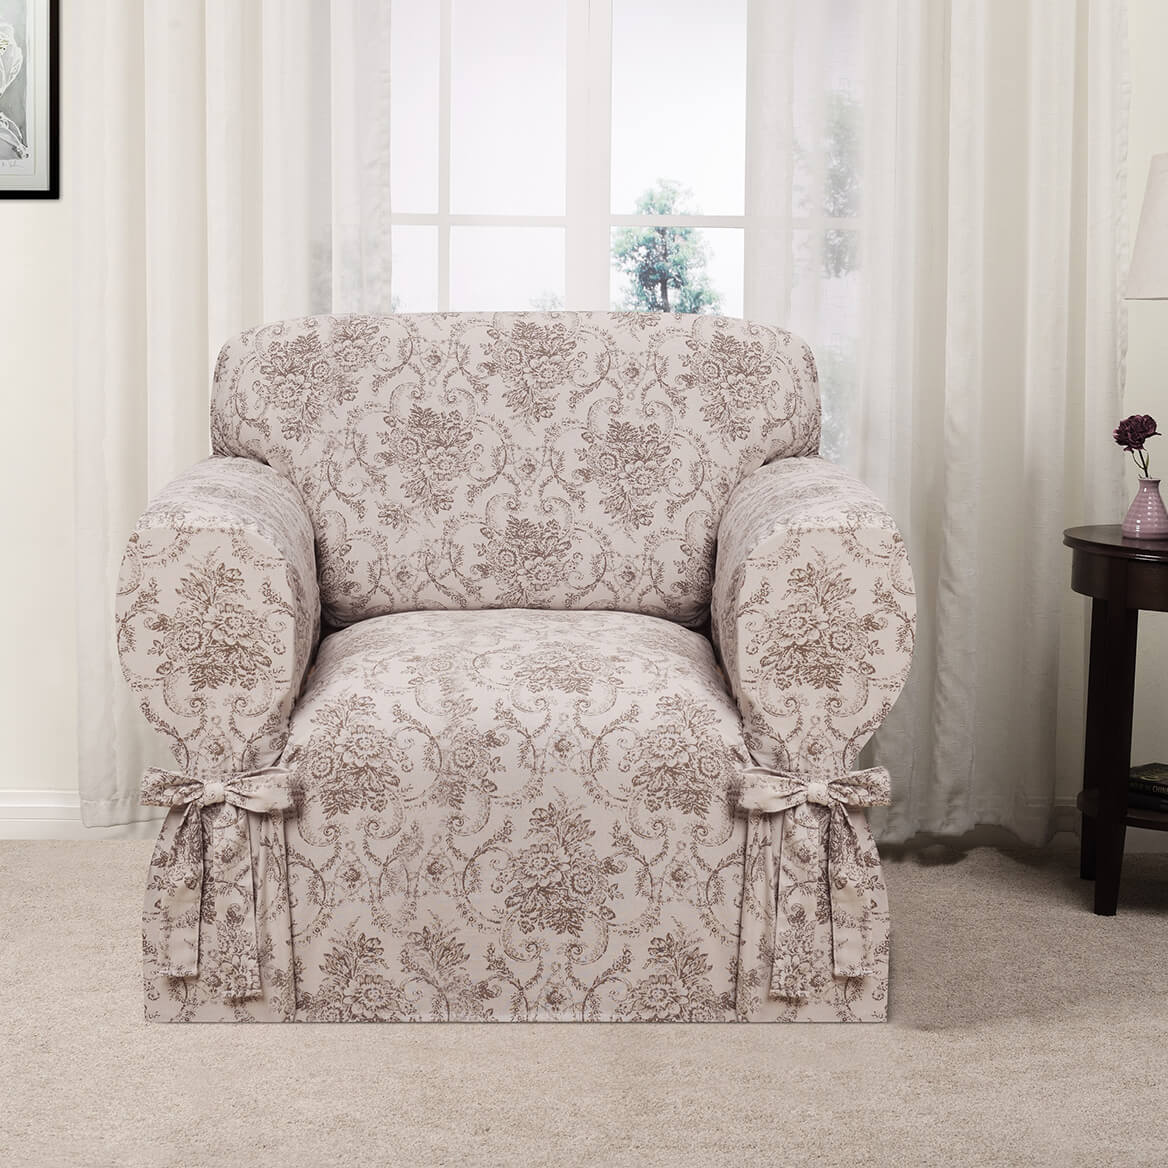 chair covers for sale ireland infant chairs sit up kathy chateau slipcover recliner cover